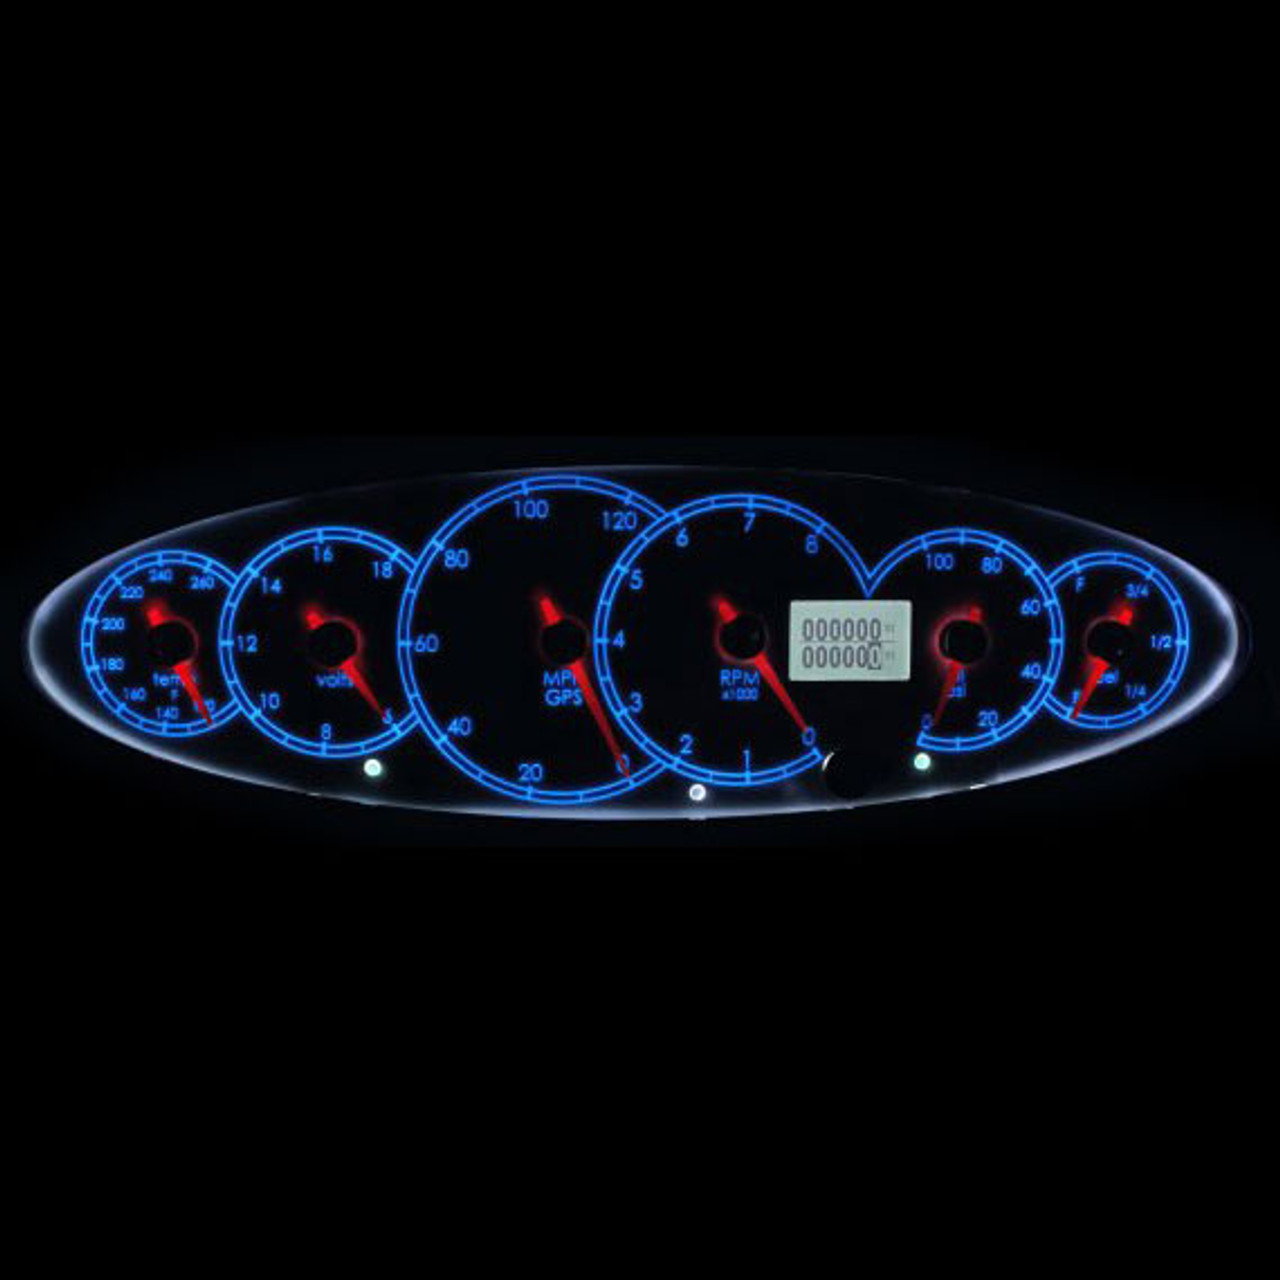 Legends - Icon - 6 in 1 Cluster (White dial with Dark Blue font, Chrome Blade Racer Red Pointer)